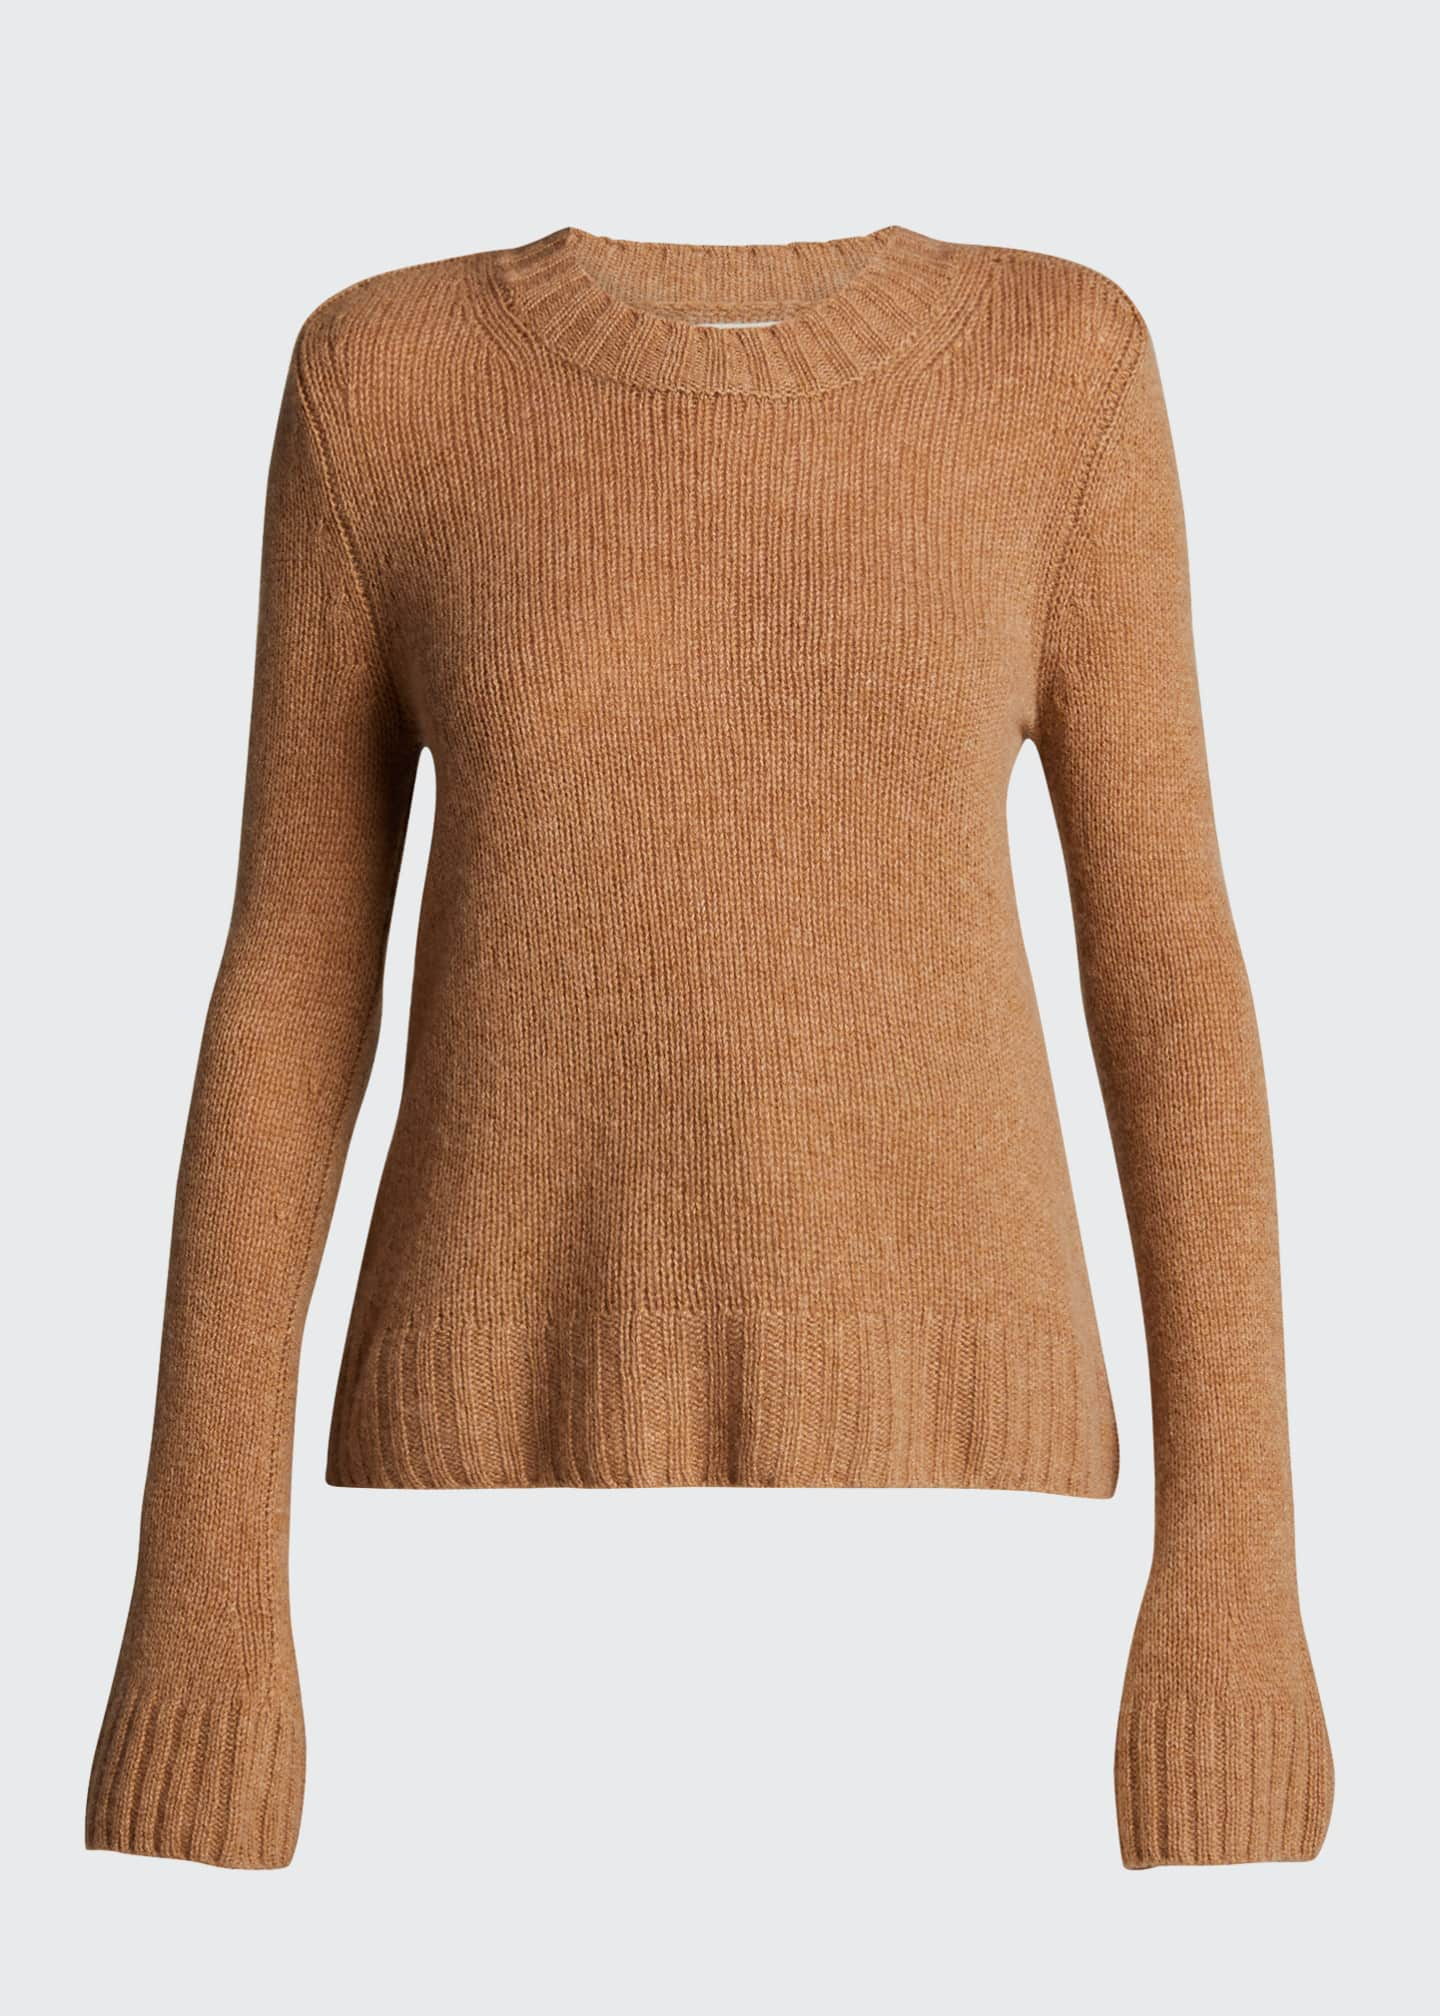 Image 5 of 5: Mary Jane Cashmere Sweater